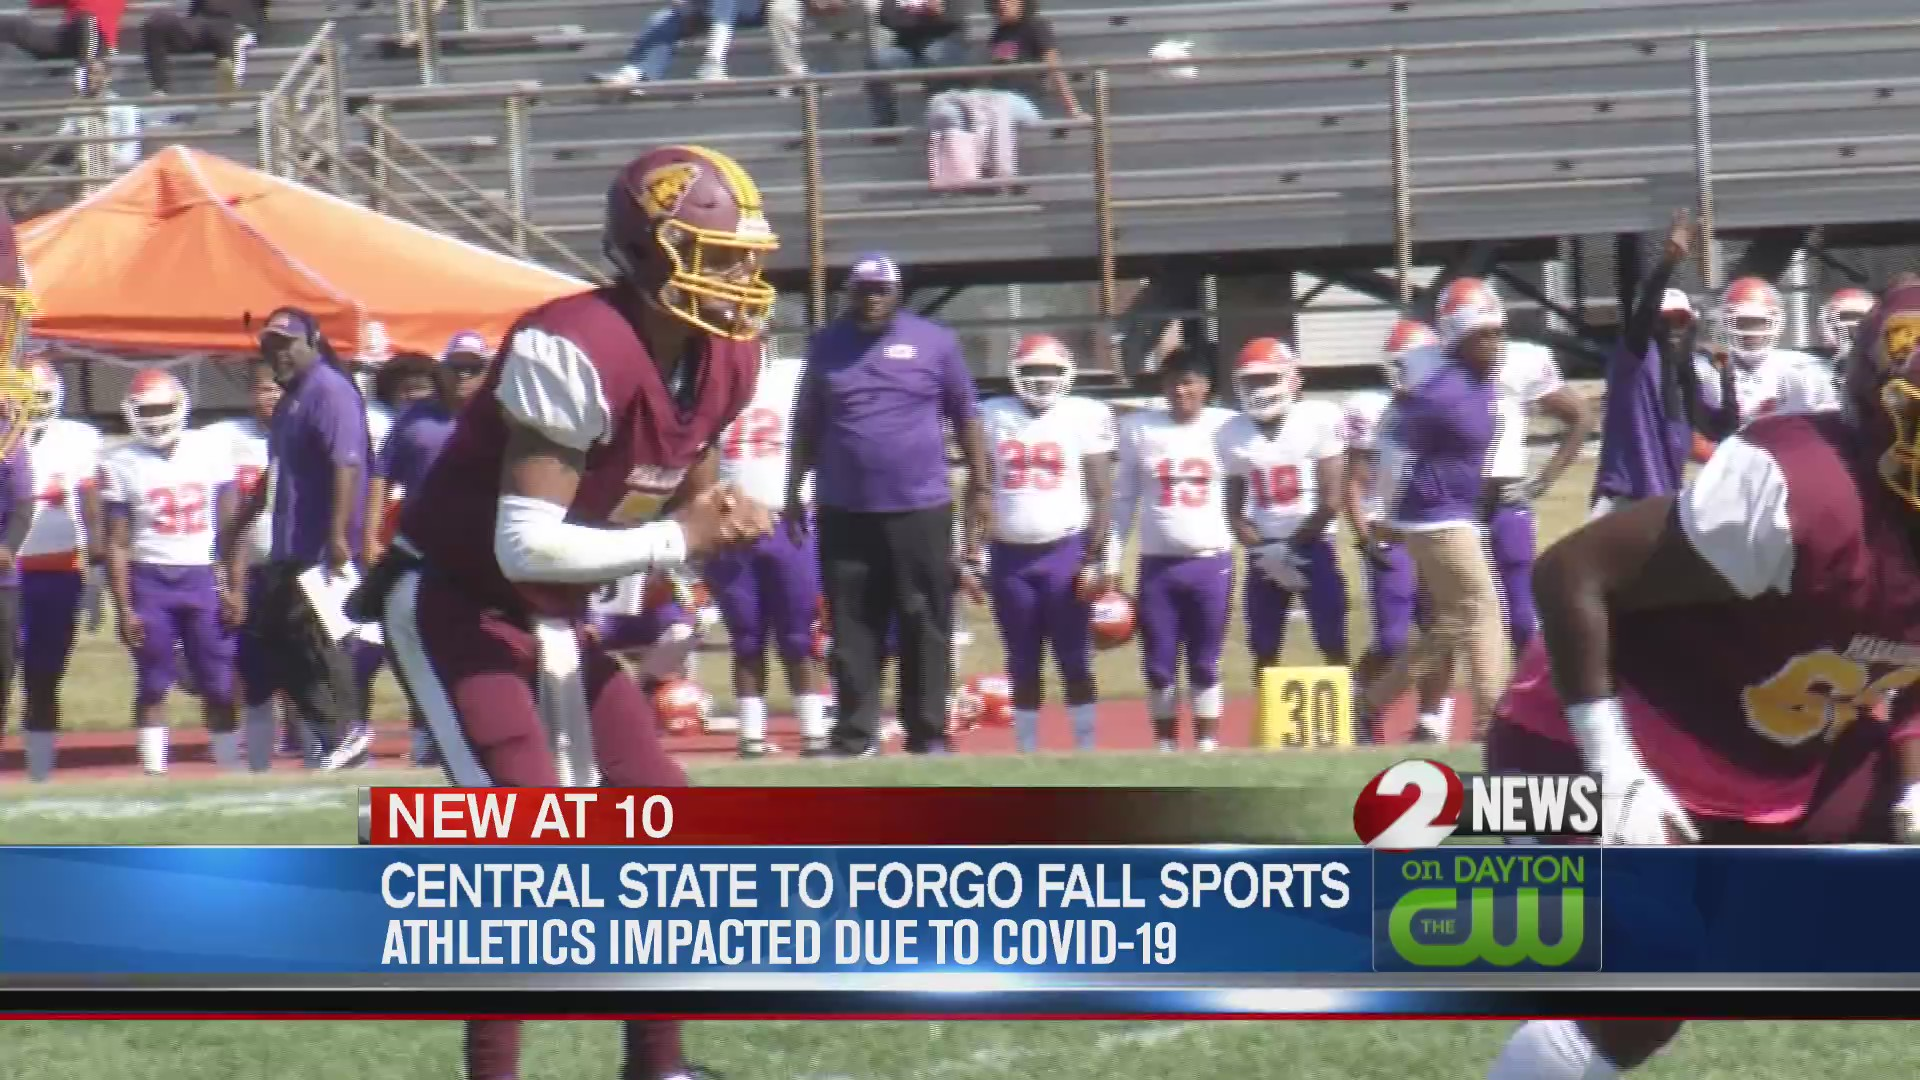 Central State to forgo fall sports